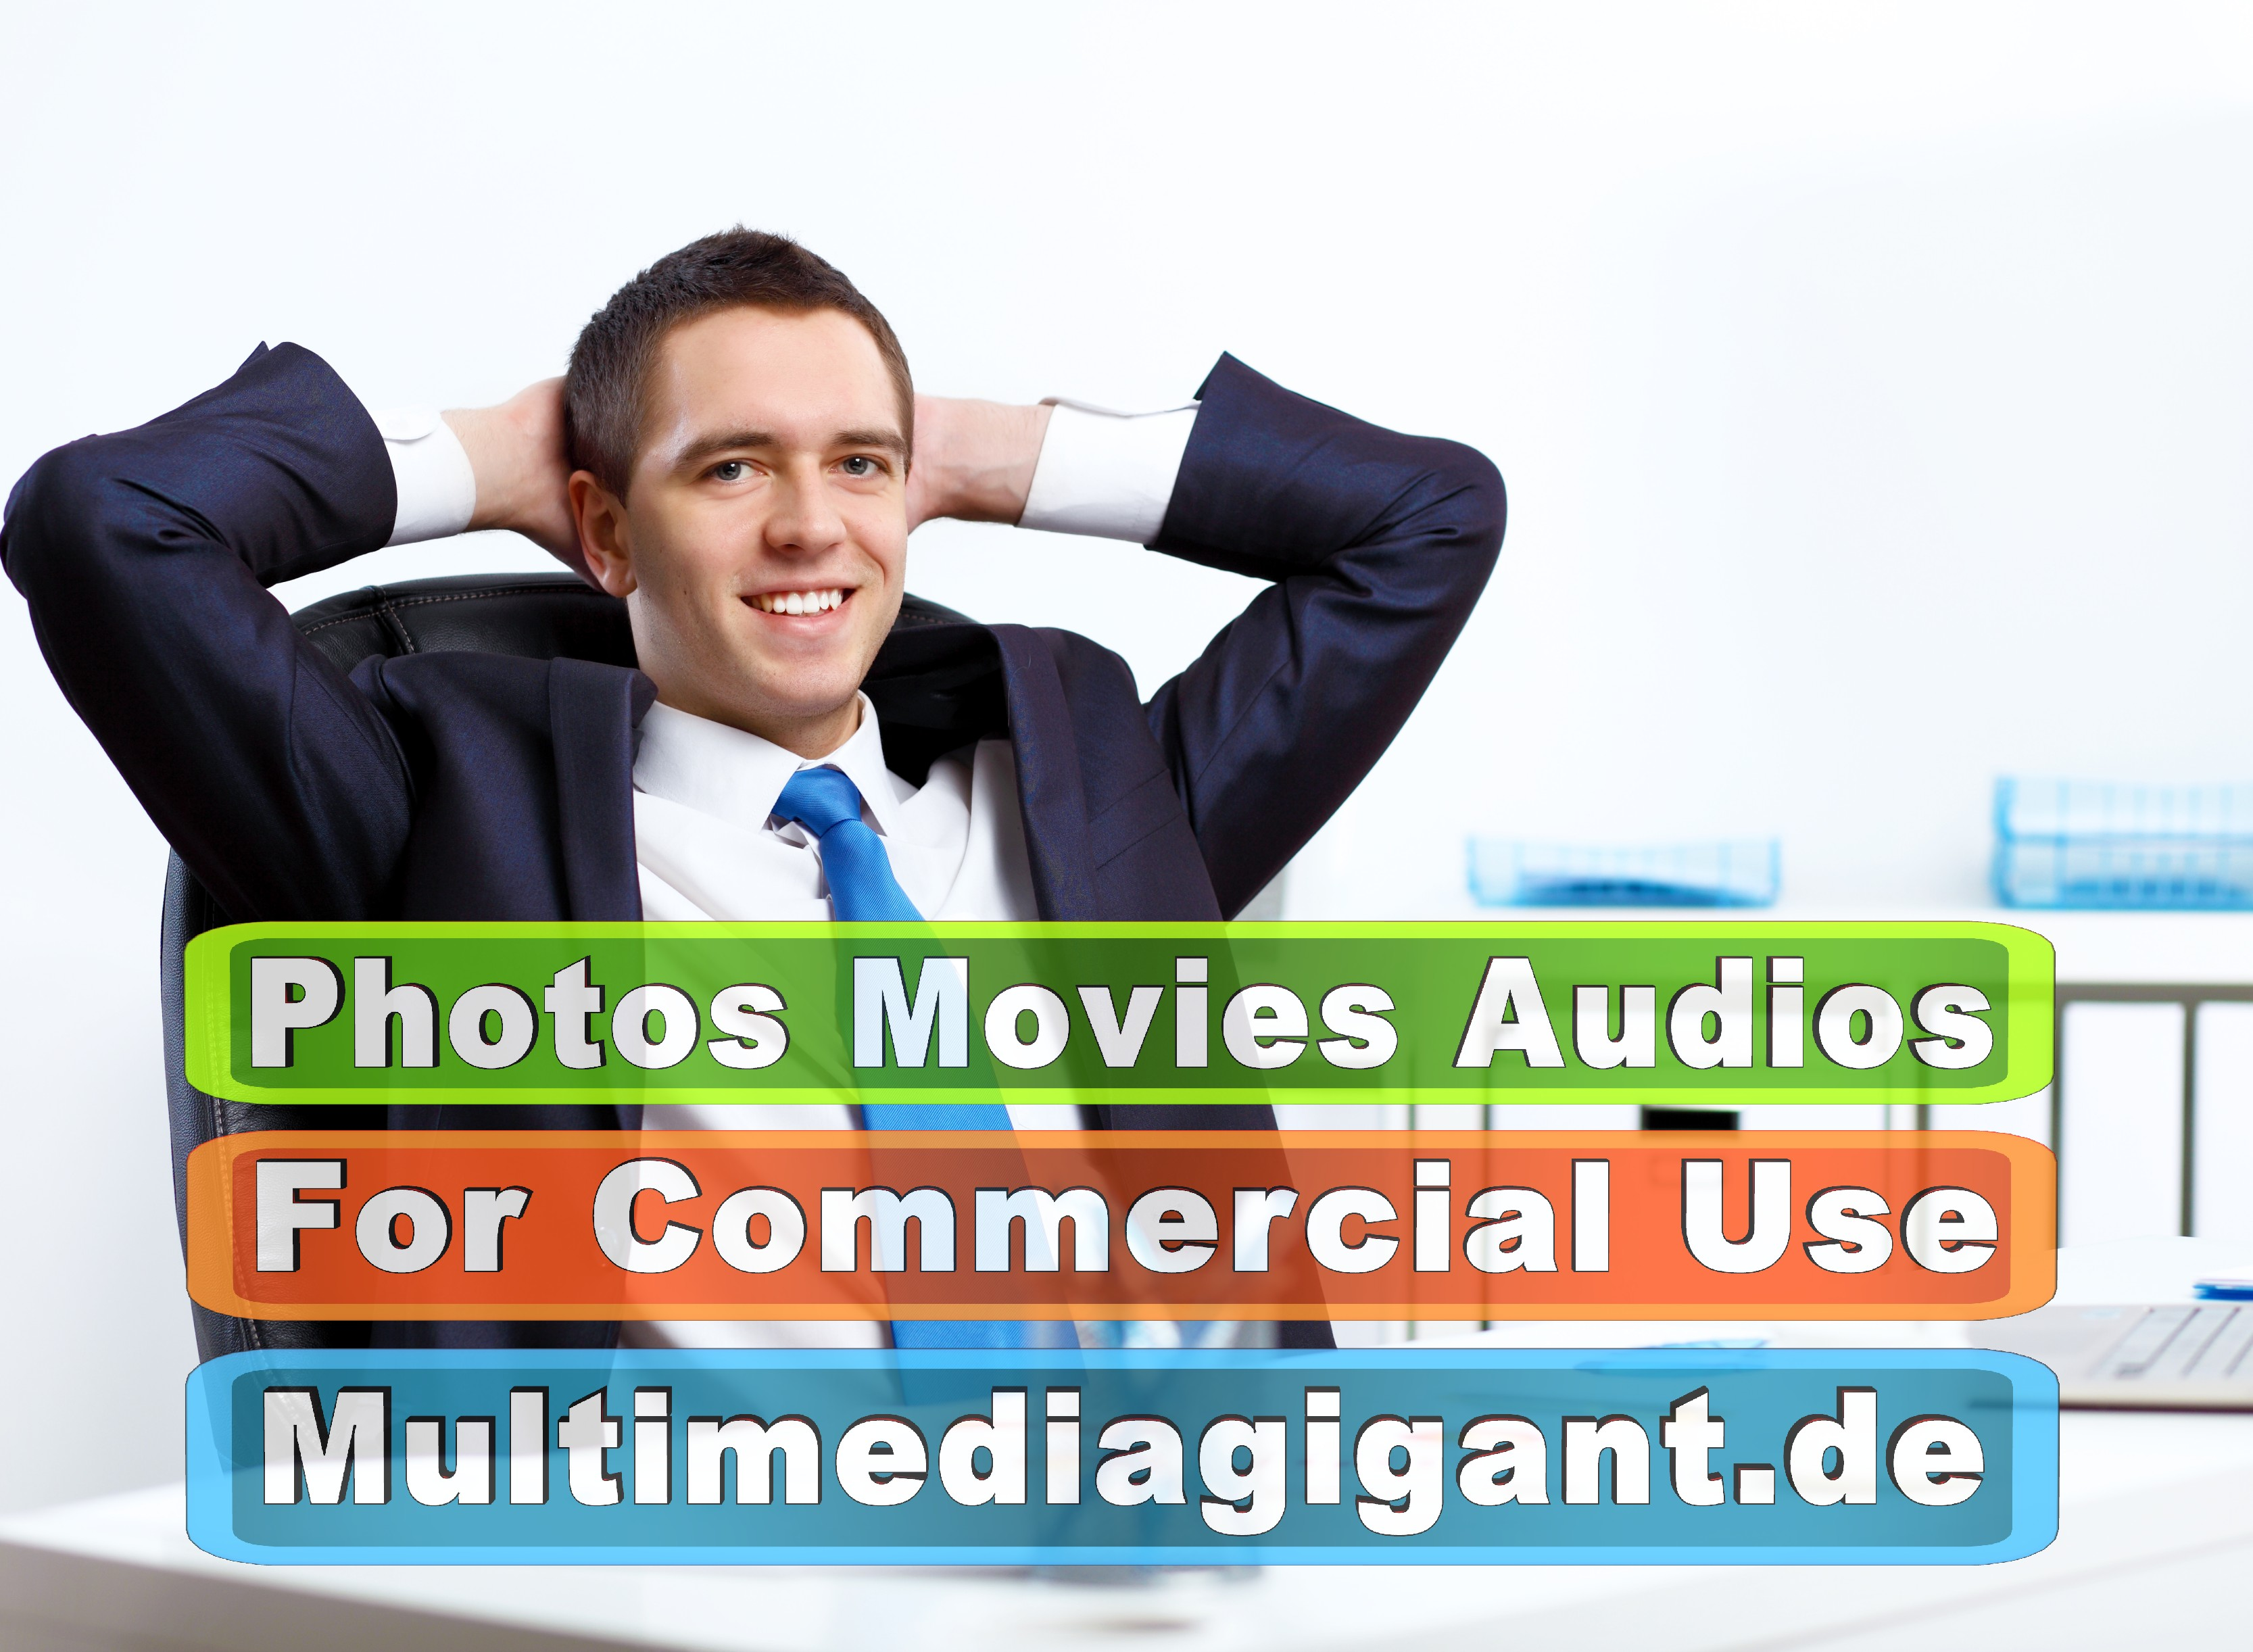 Buy Royalty Free Images For Commercial Use